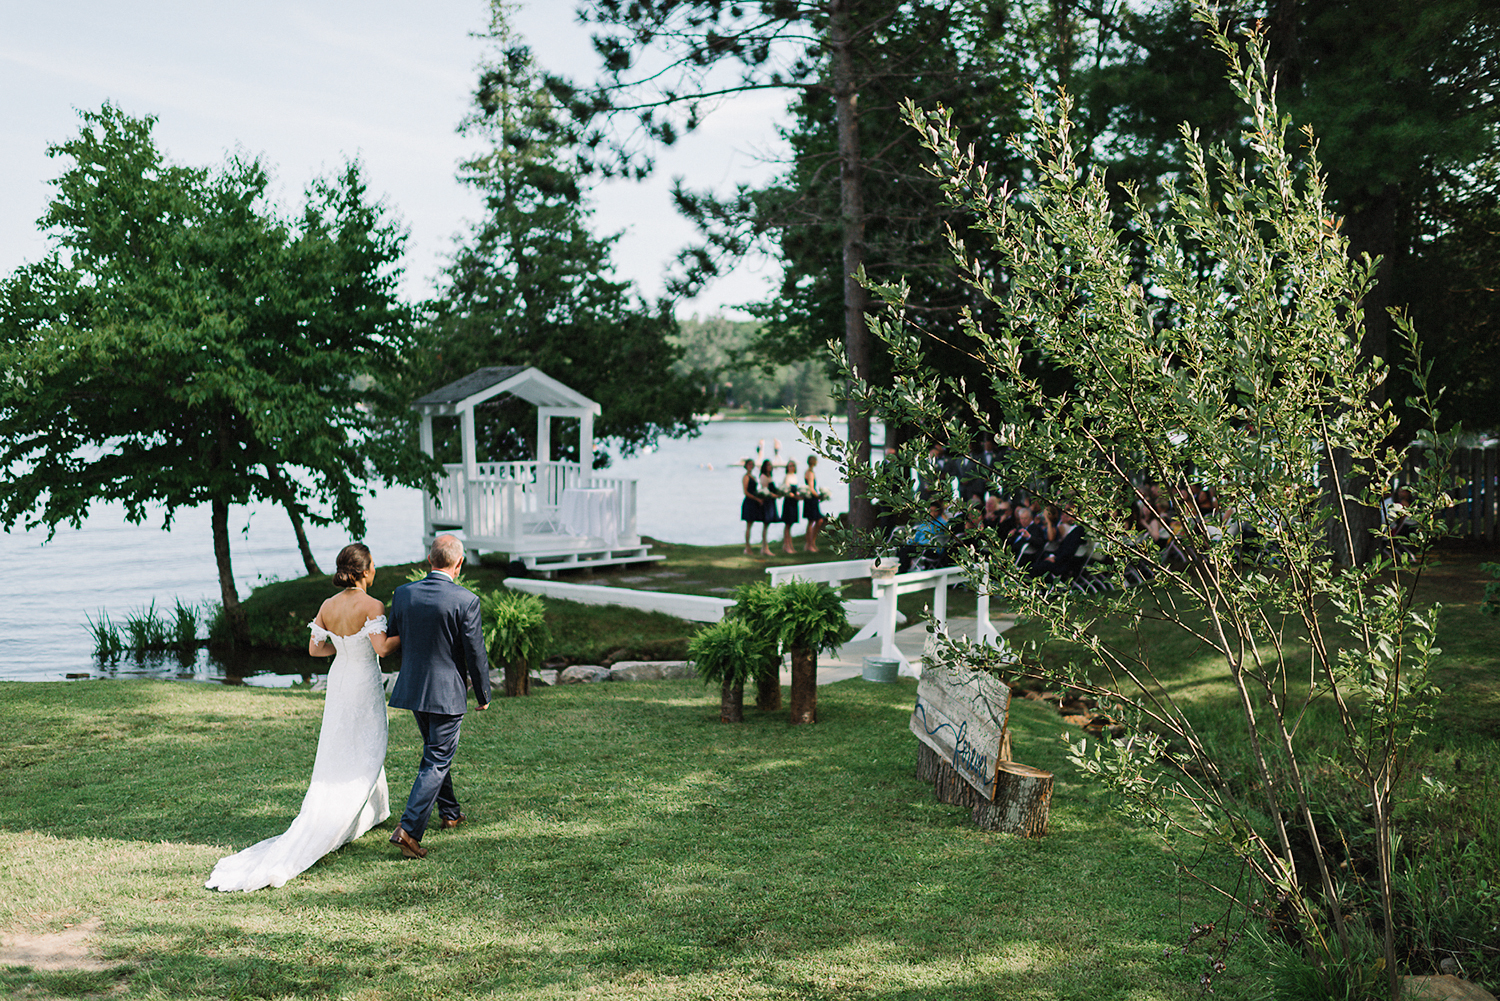 muskoka-wedding-photographer-toronto-wedding-photography-hidden-valley-resort-documentary-photojournalistic-ceremony-space-lakeside-cute-rustic-white-chapel-bride-walking-in-with-dad-epic.jpg